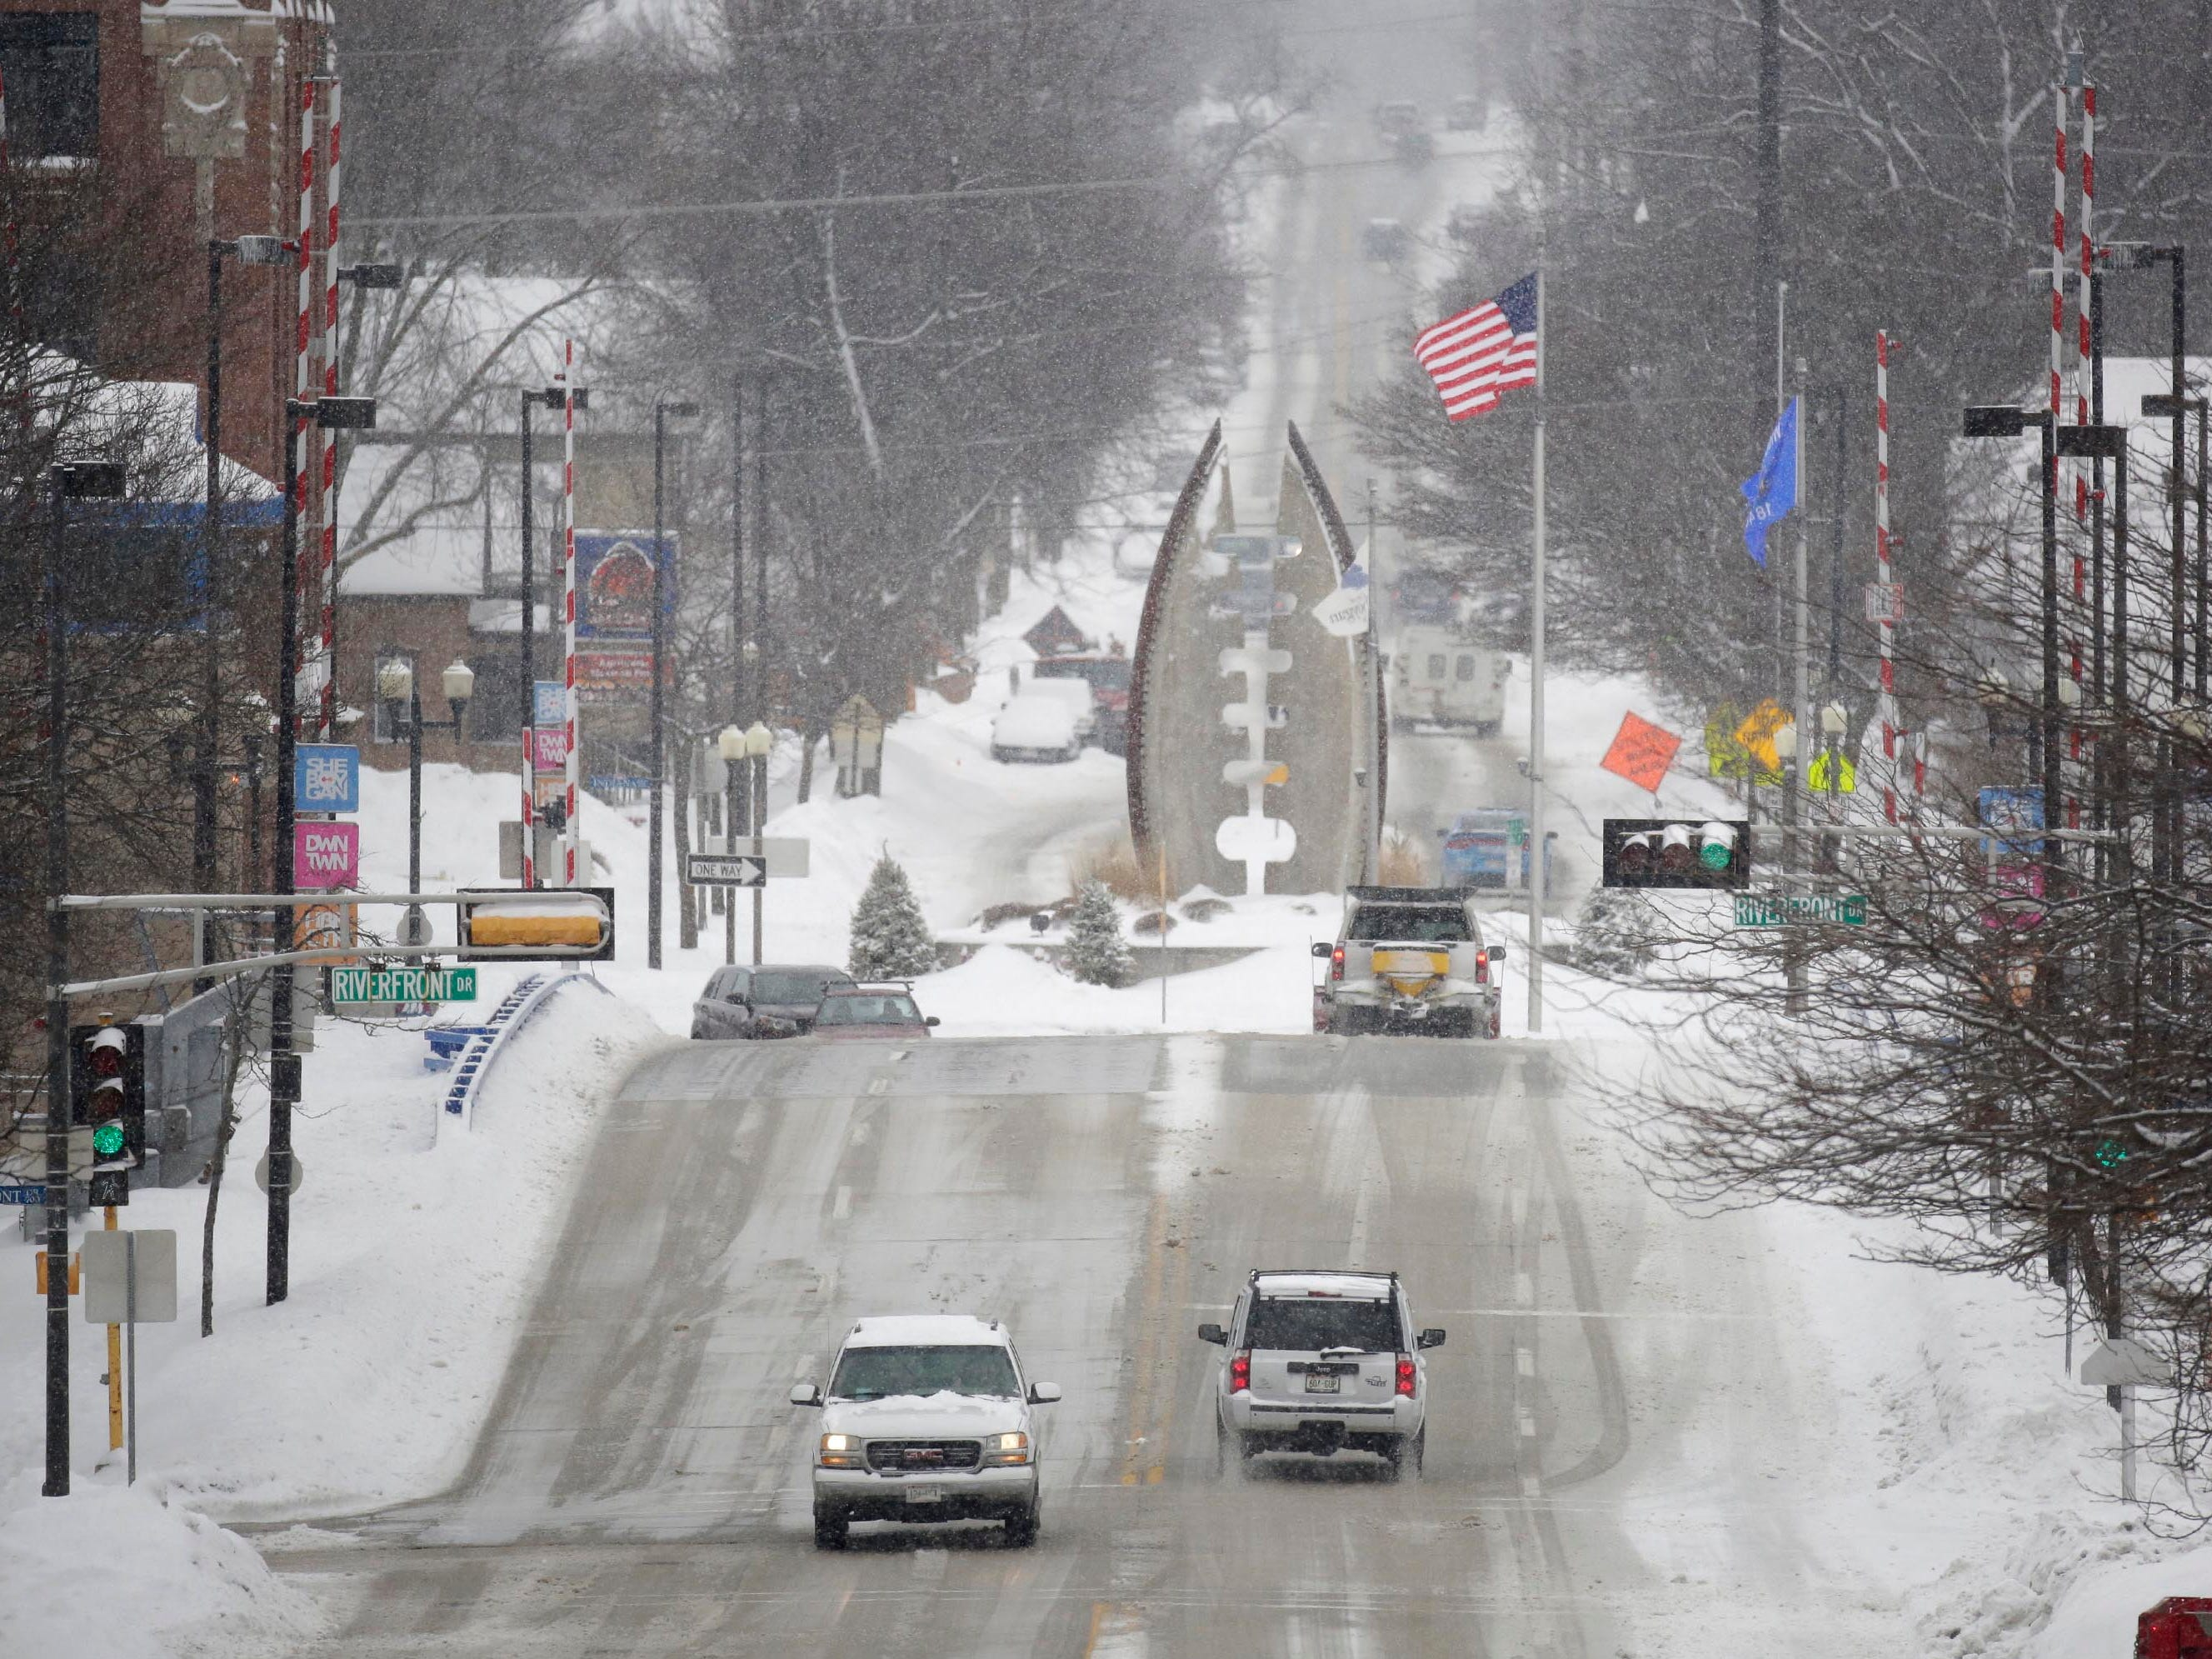 Sheboygan's South 8th Street features good winter driving conditions, Wednesday, February 27, 2019, in Sheboygan, Wis.